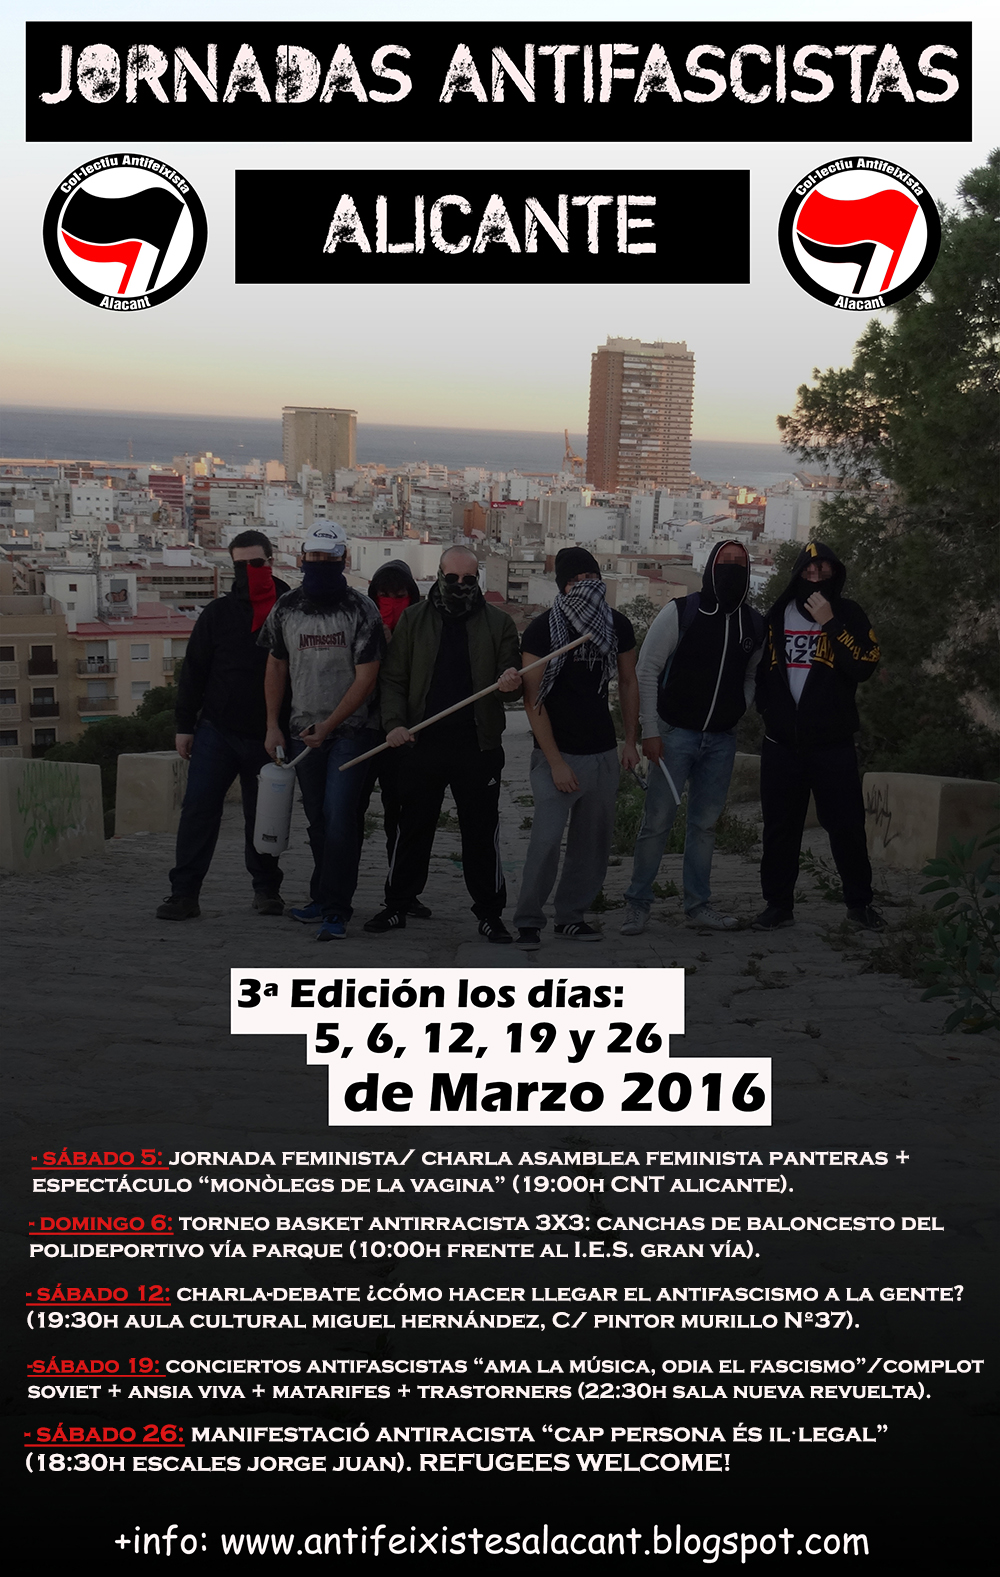 Jornadas Antifascistas Alicante 2016